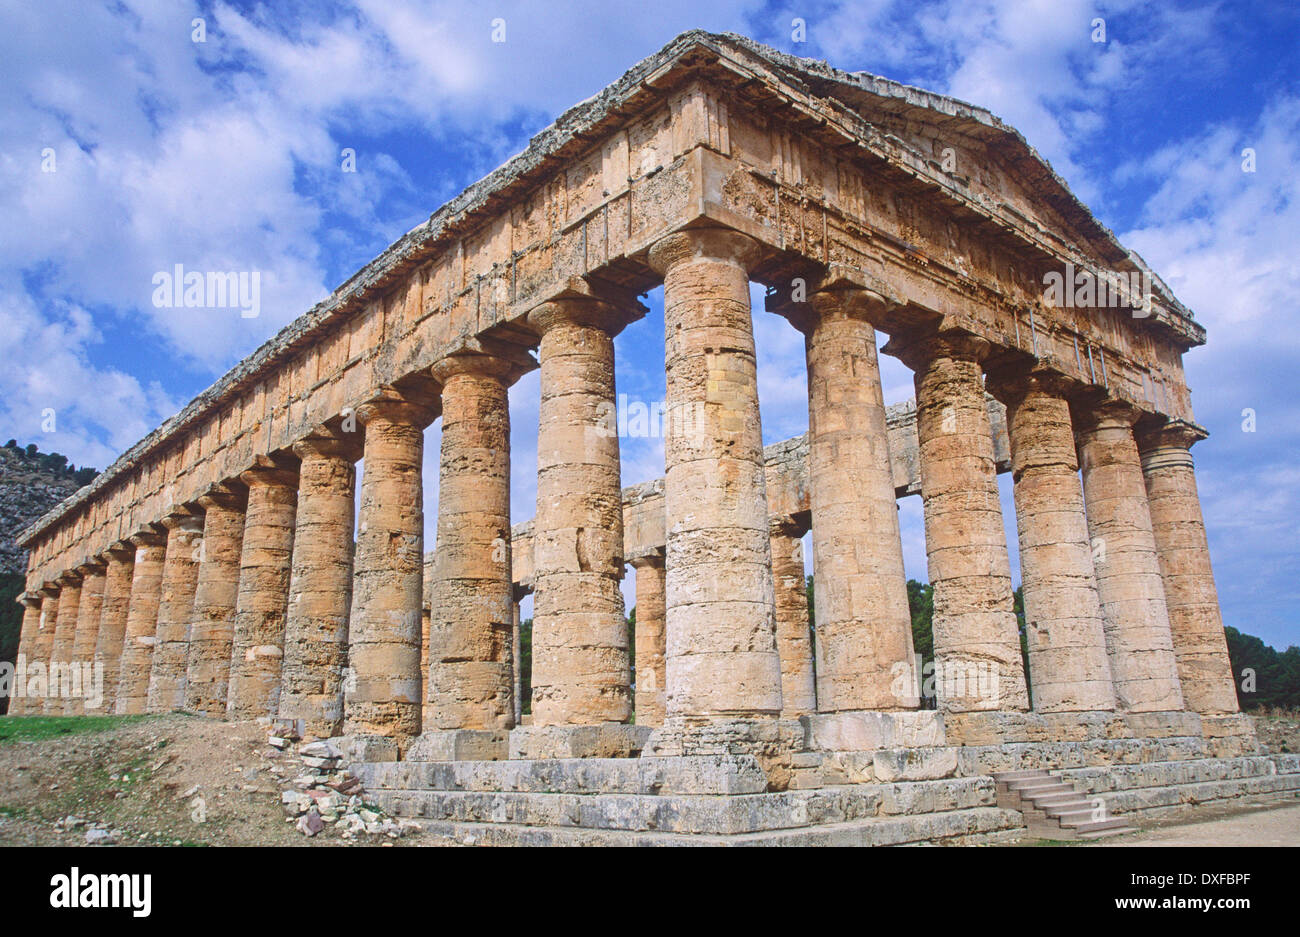 Greek style Temple of Segesta, Sicily, Italy Stock Photo